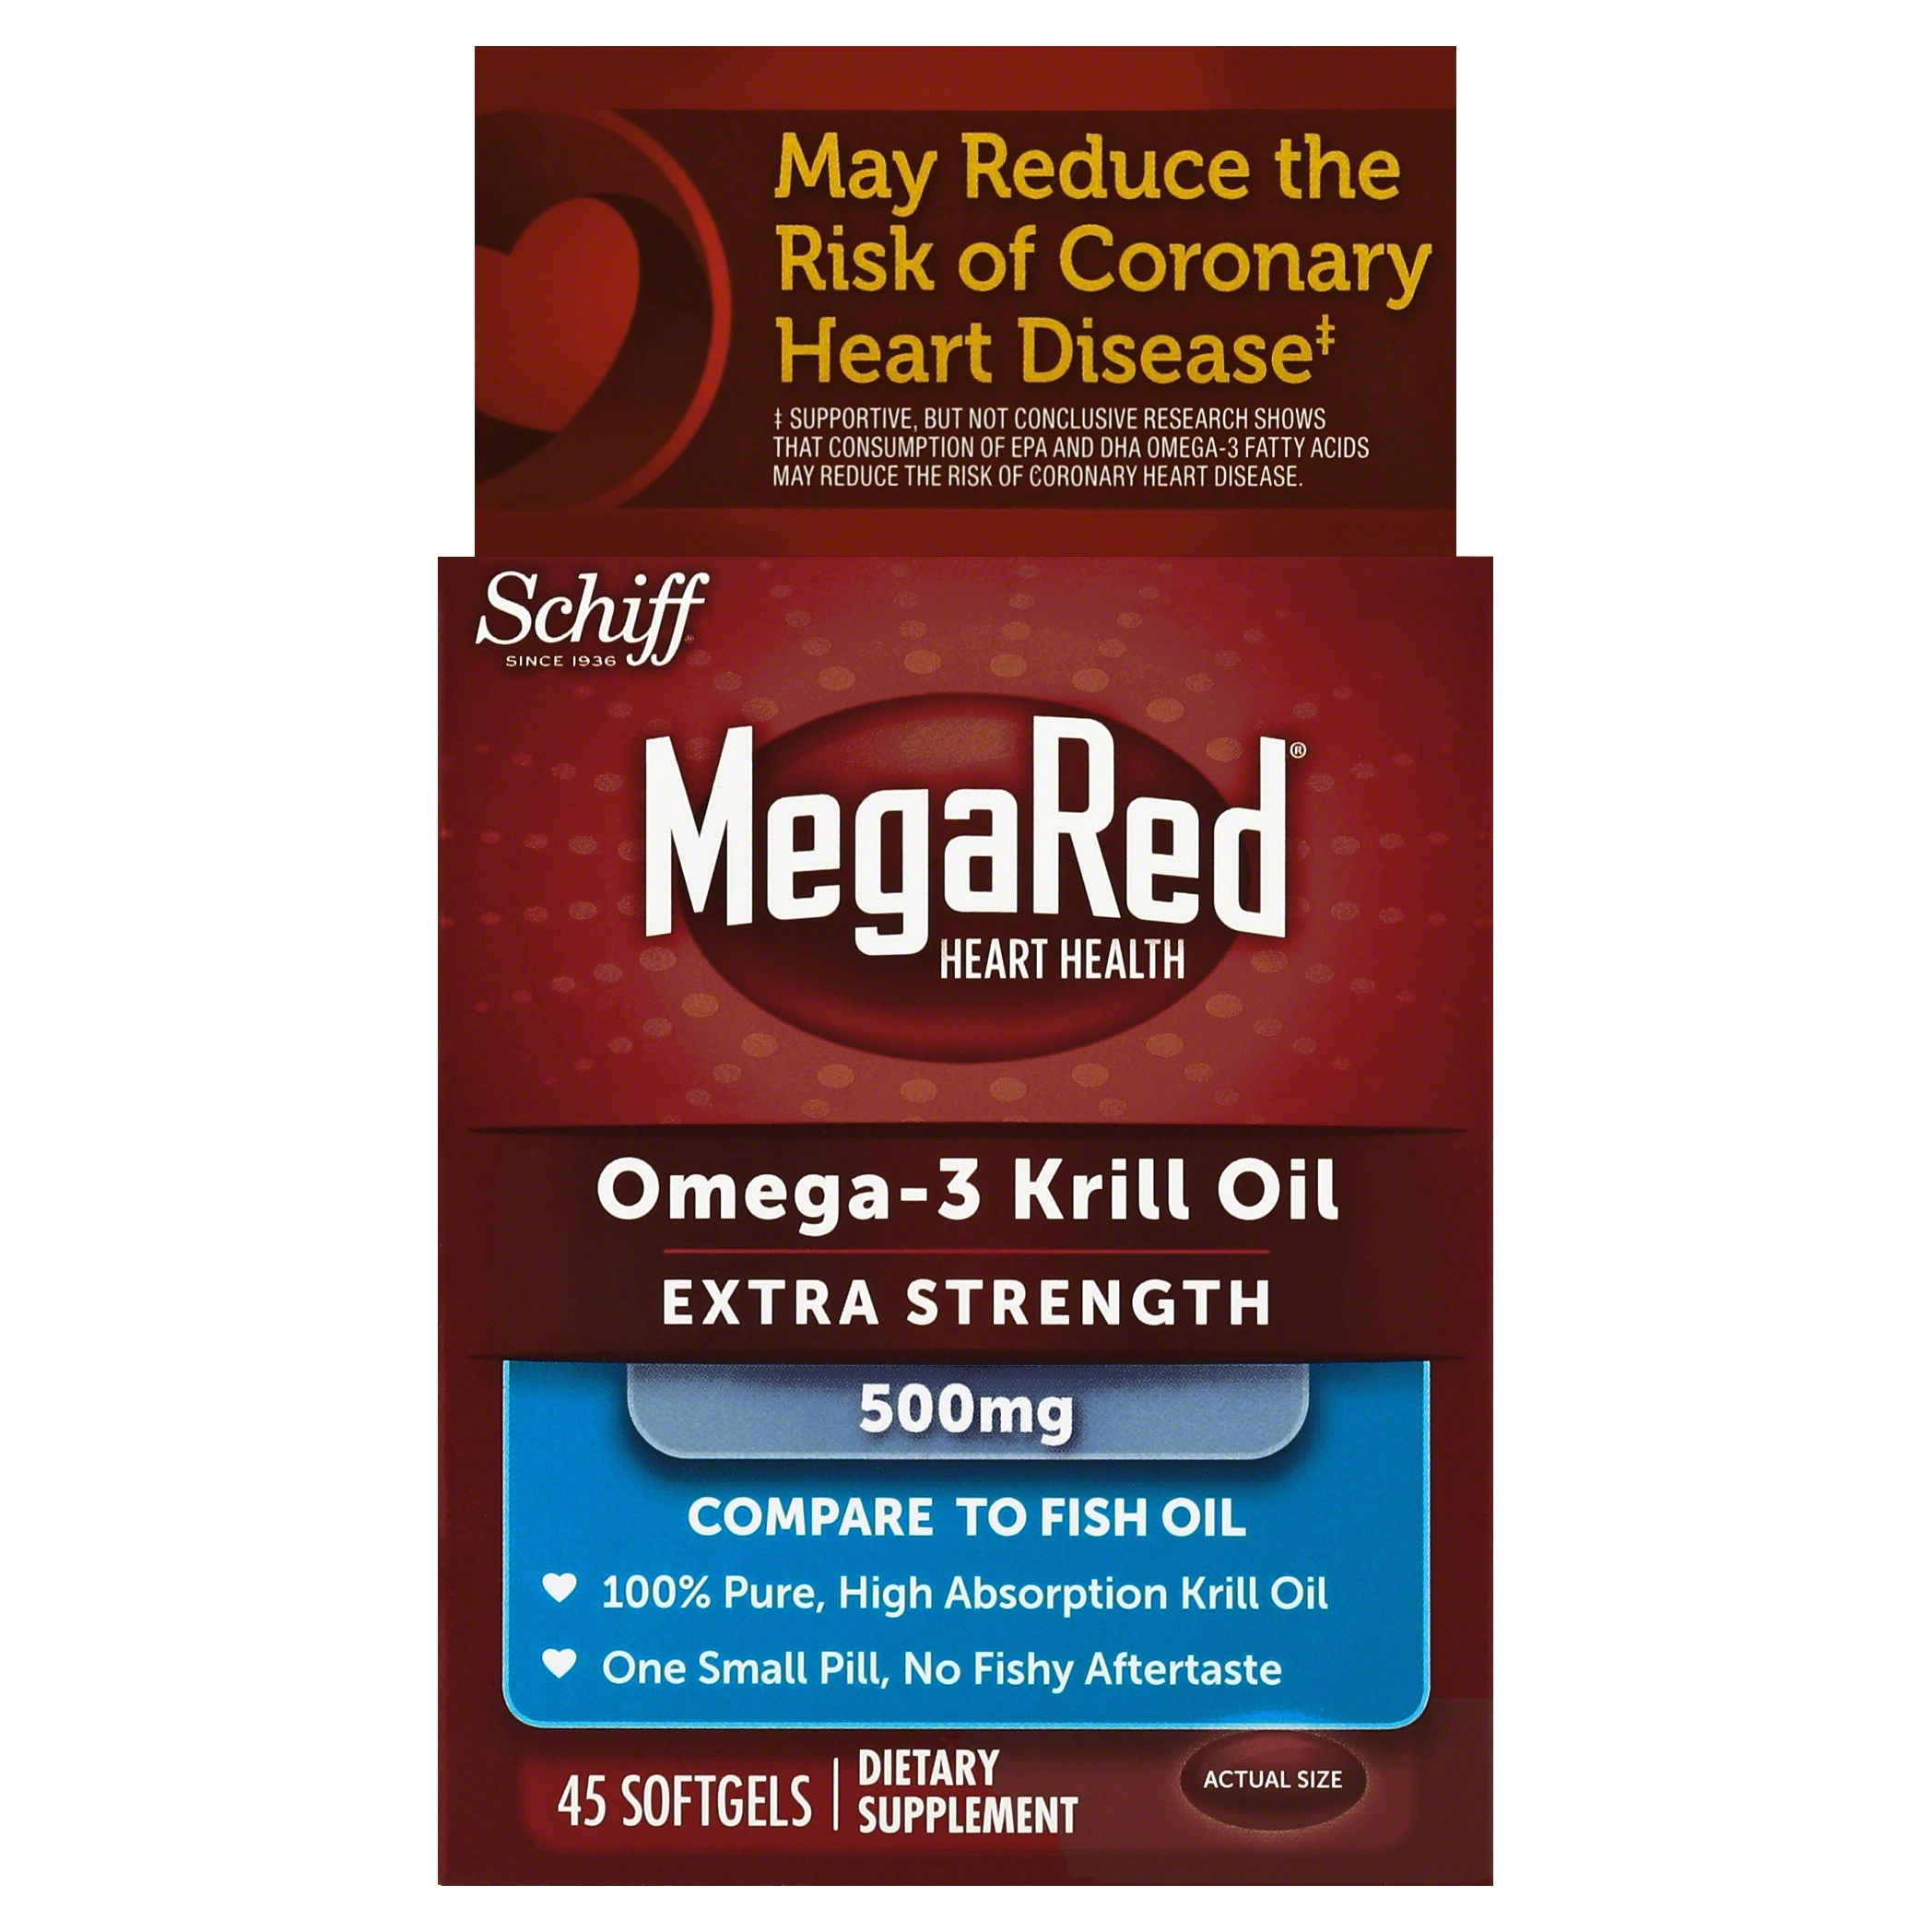 MegaRed Extra Strength Omega 3 Krill Oil 500mg Supplement, 45 Count